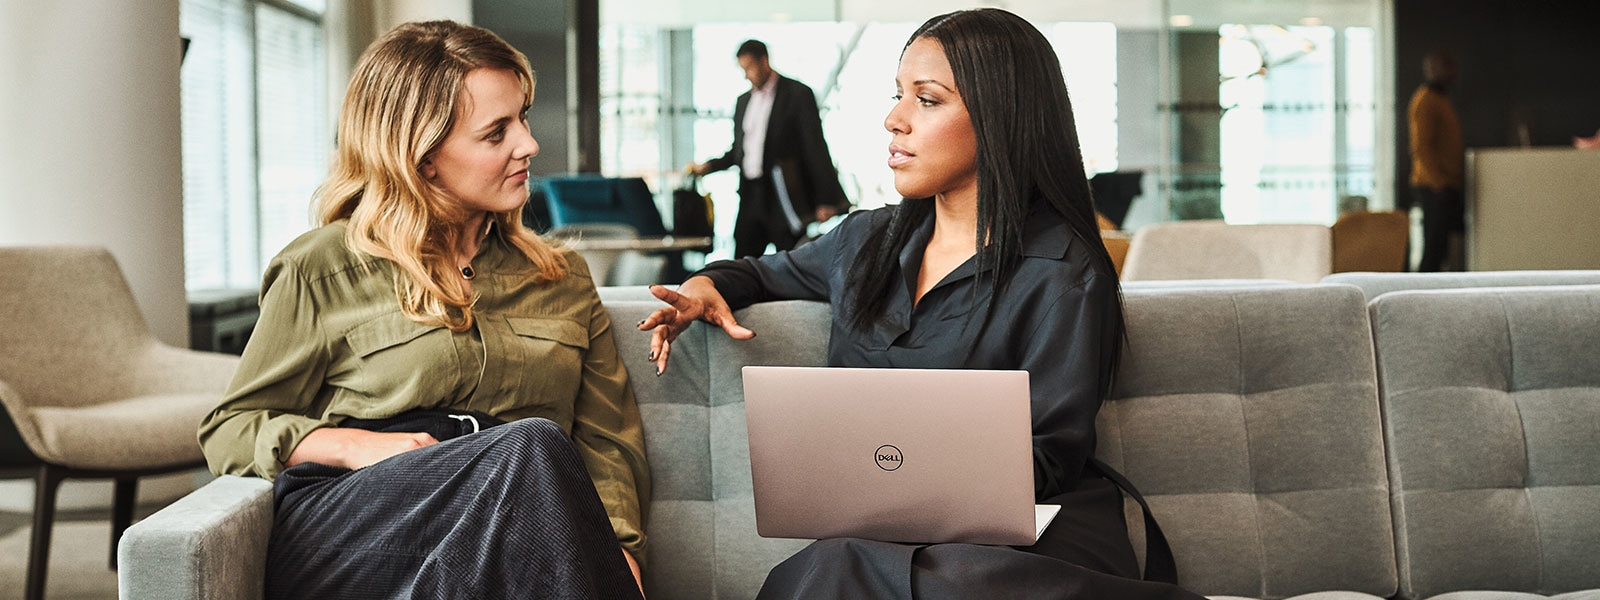 Two business women in conversation on a couch